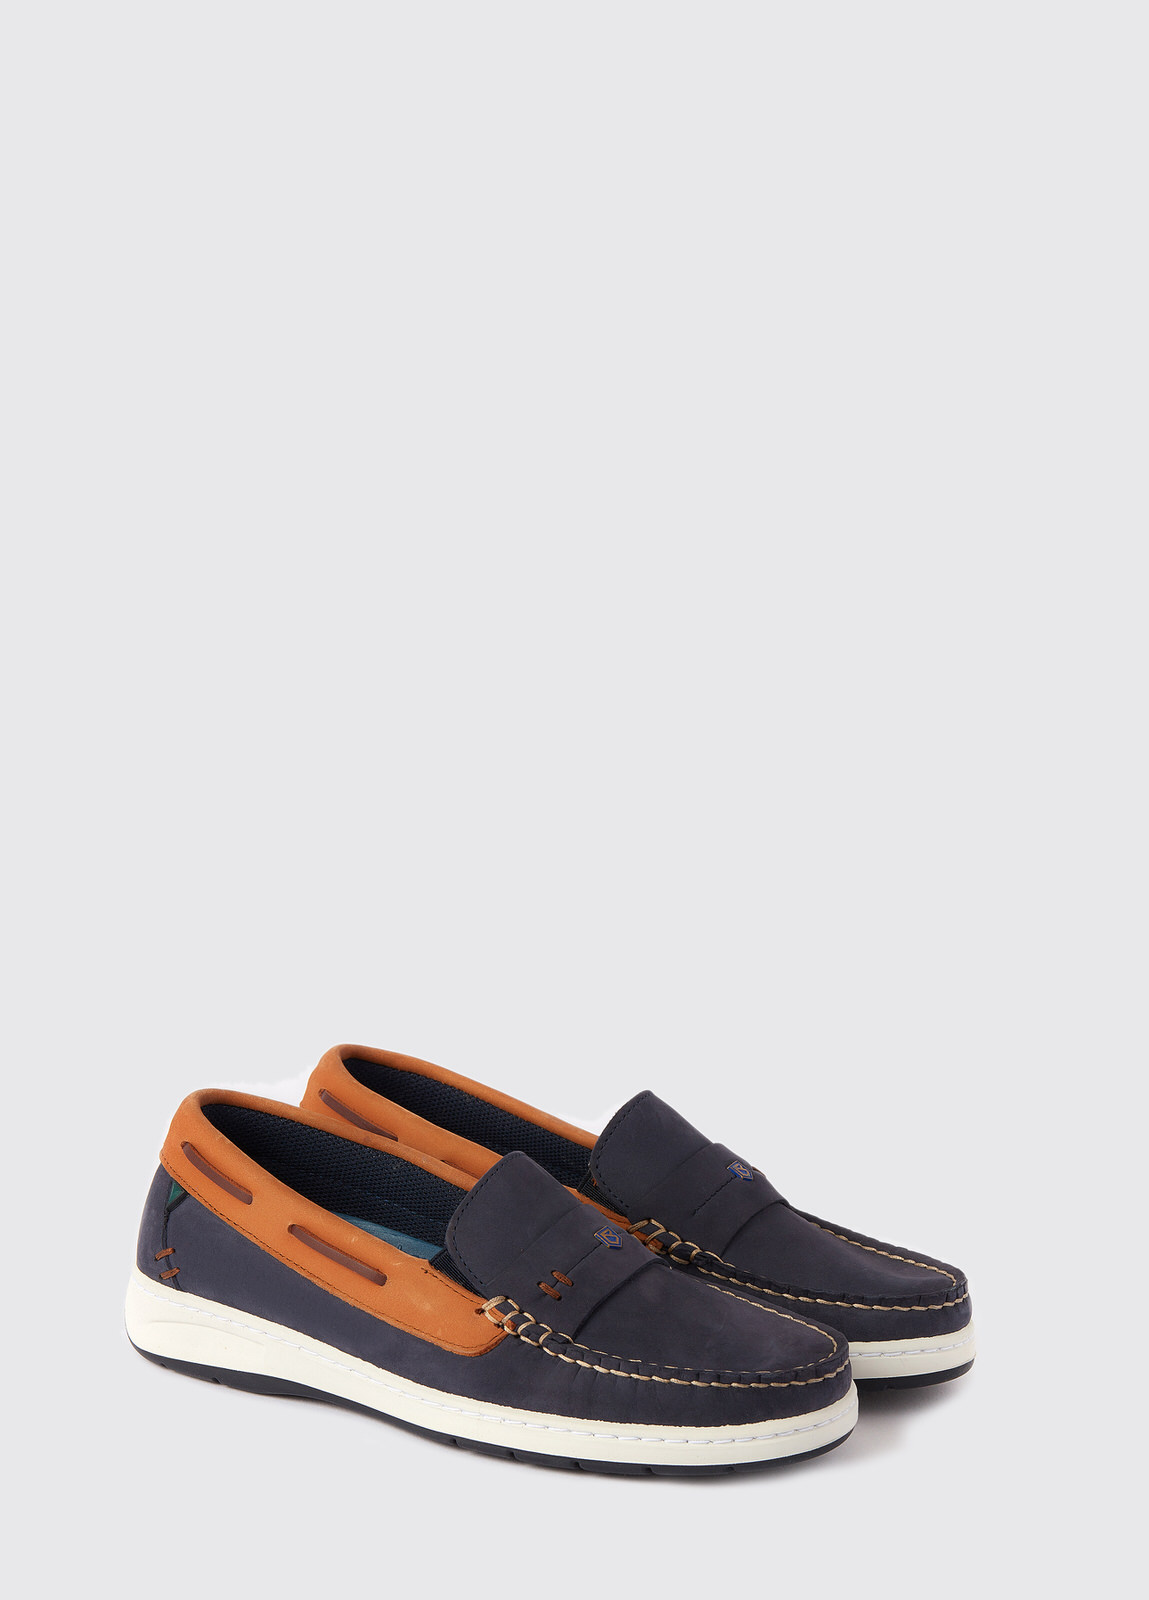 Havana Deck shoes - Denim/Tan